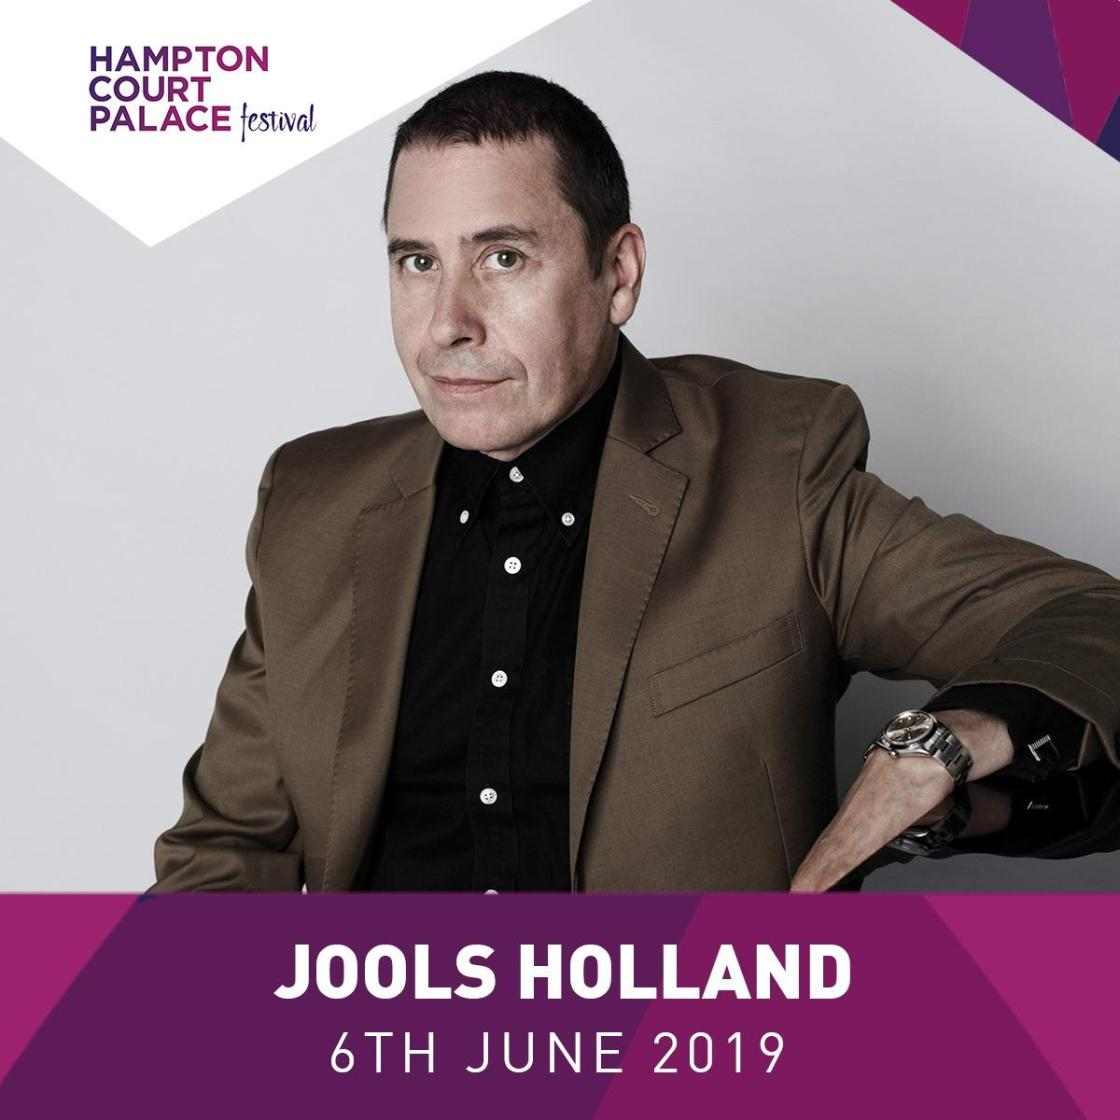 Not long to go now…our first week commences next week! Up first: Jools Holland, ...